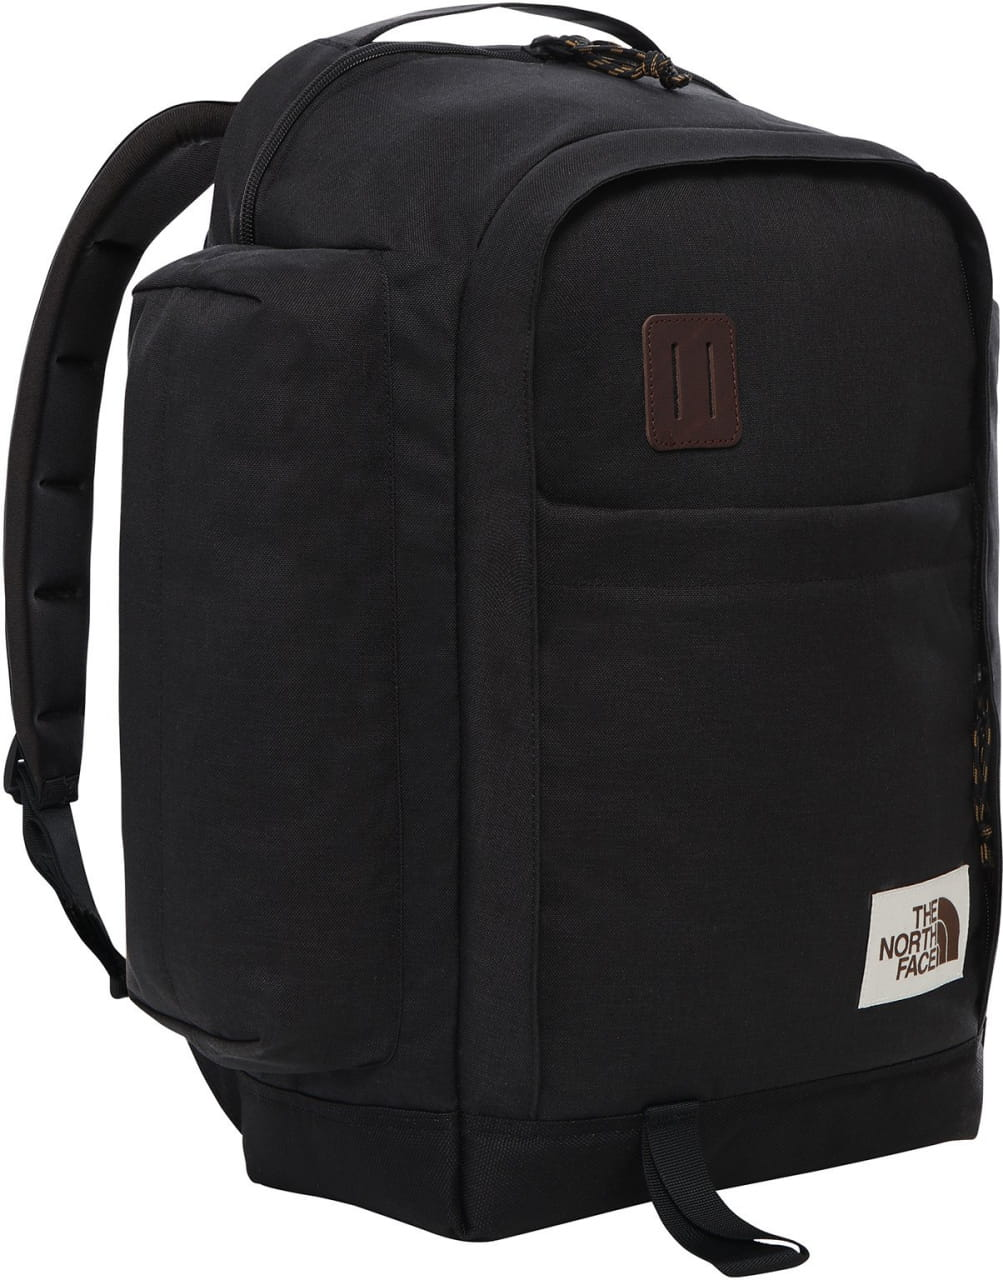 Batoh The North Face Ruthsac Backpack